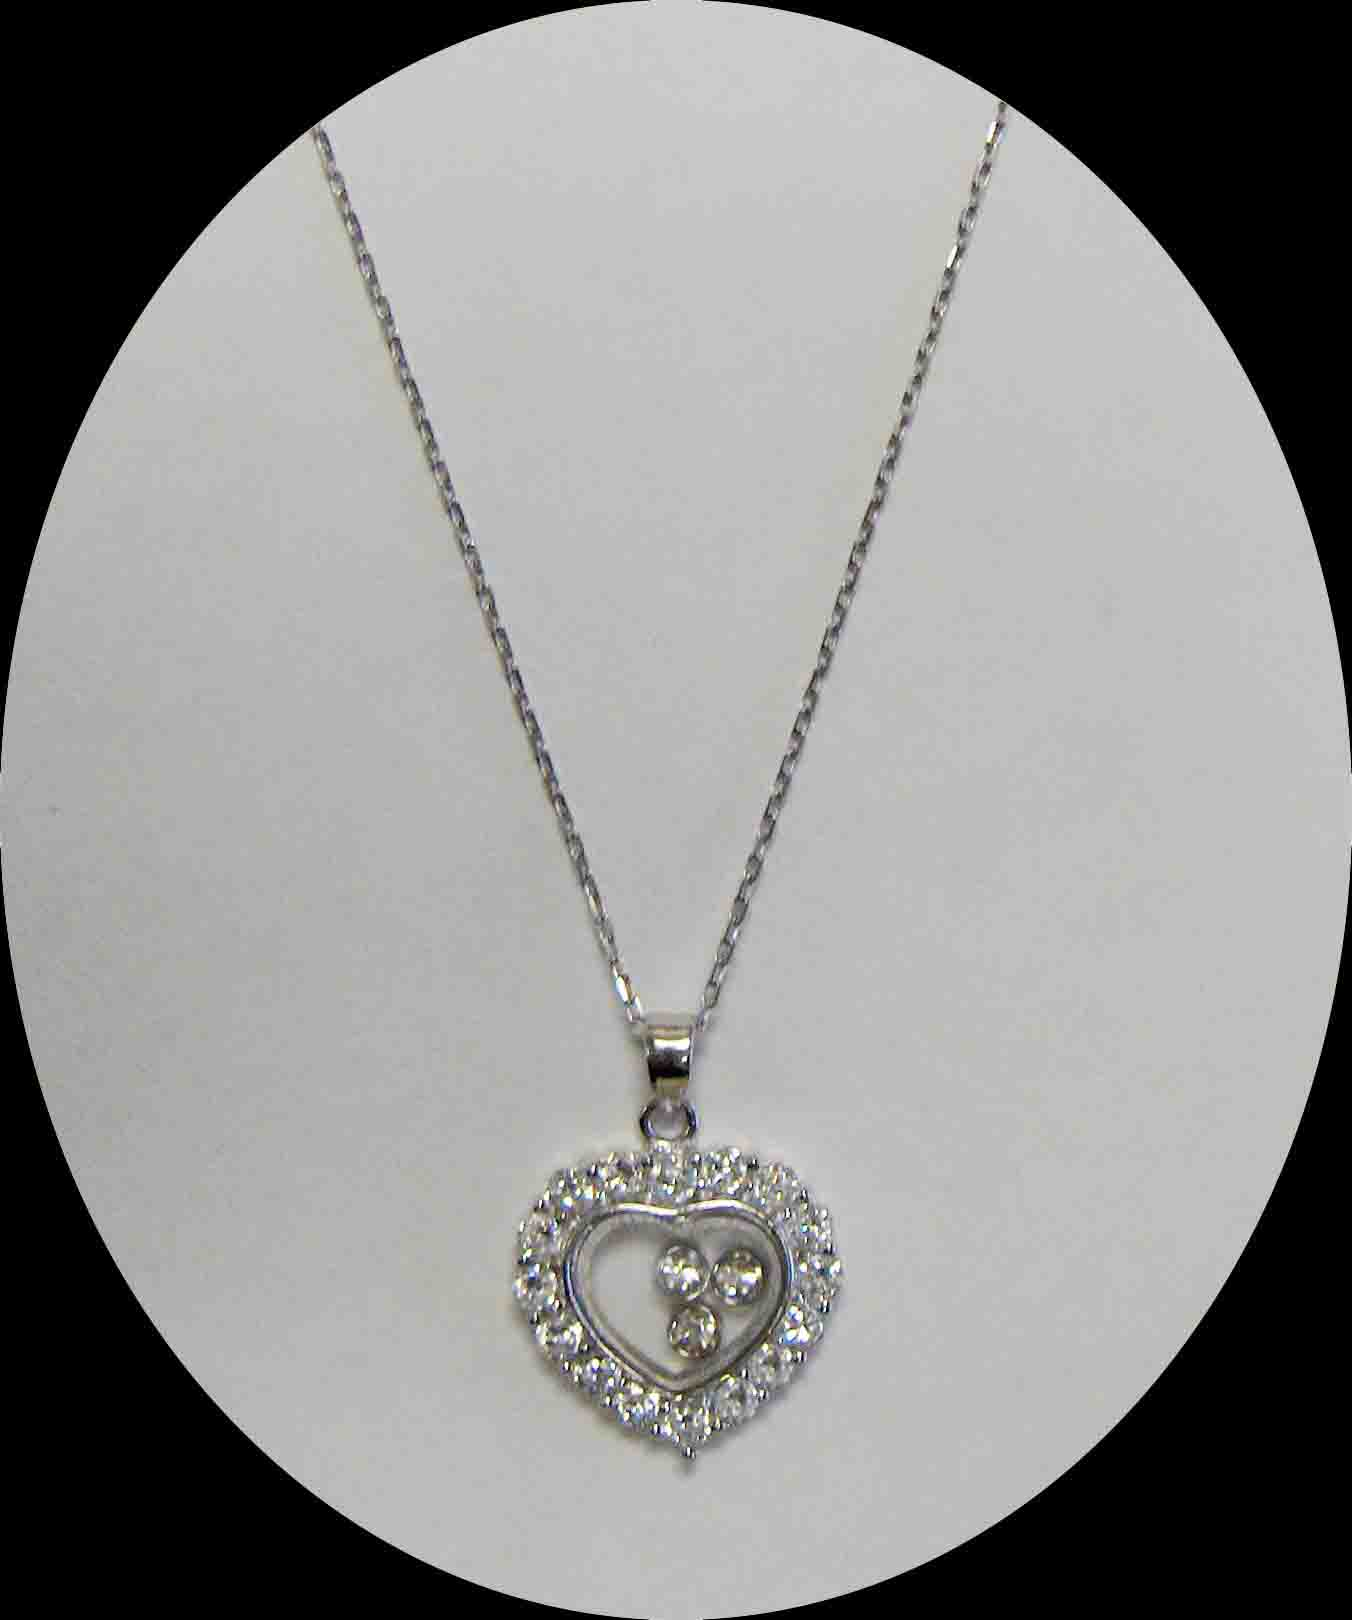 Floating CZ heart pendant necklace